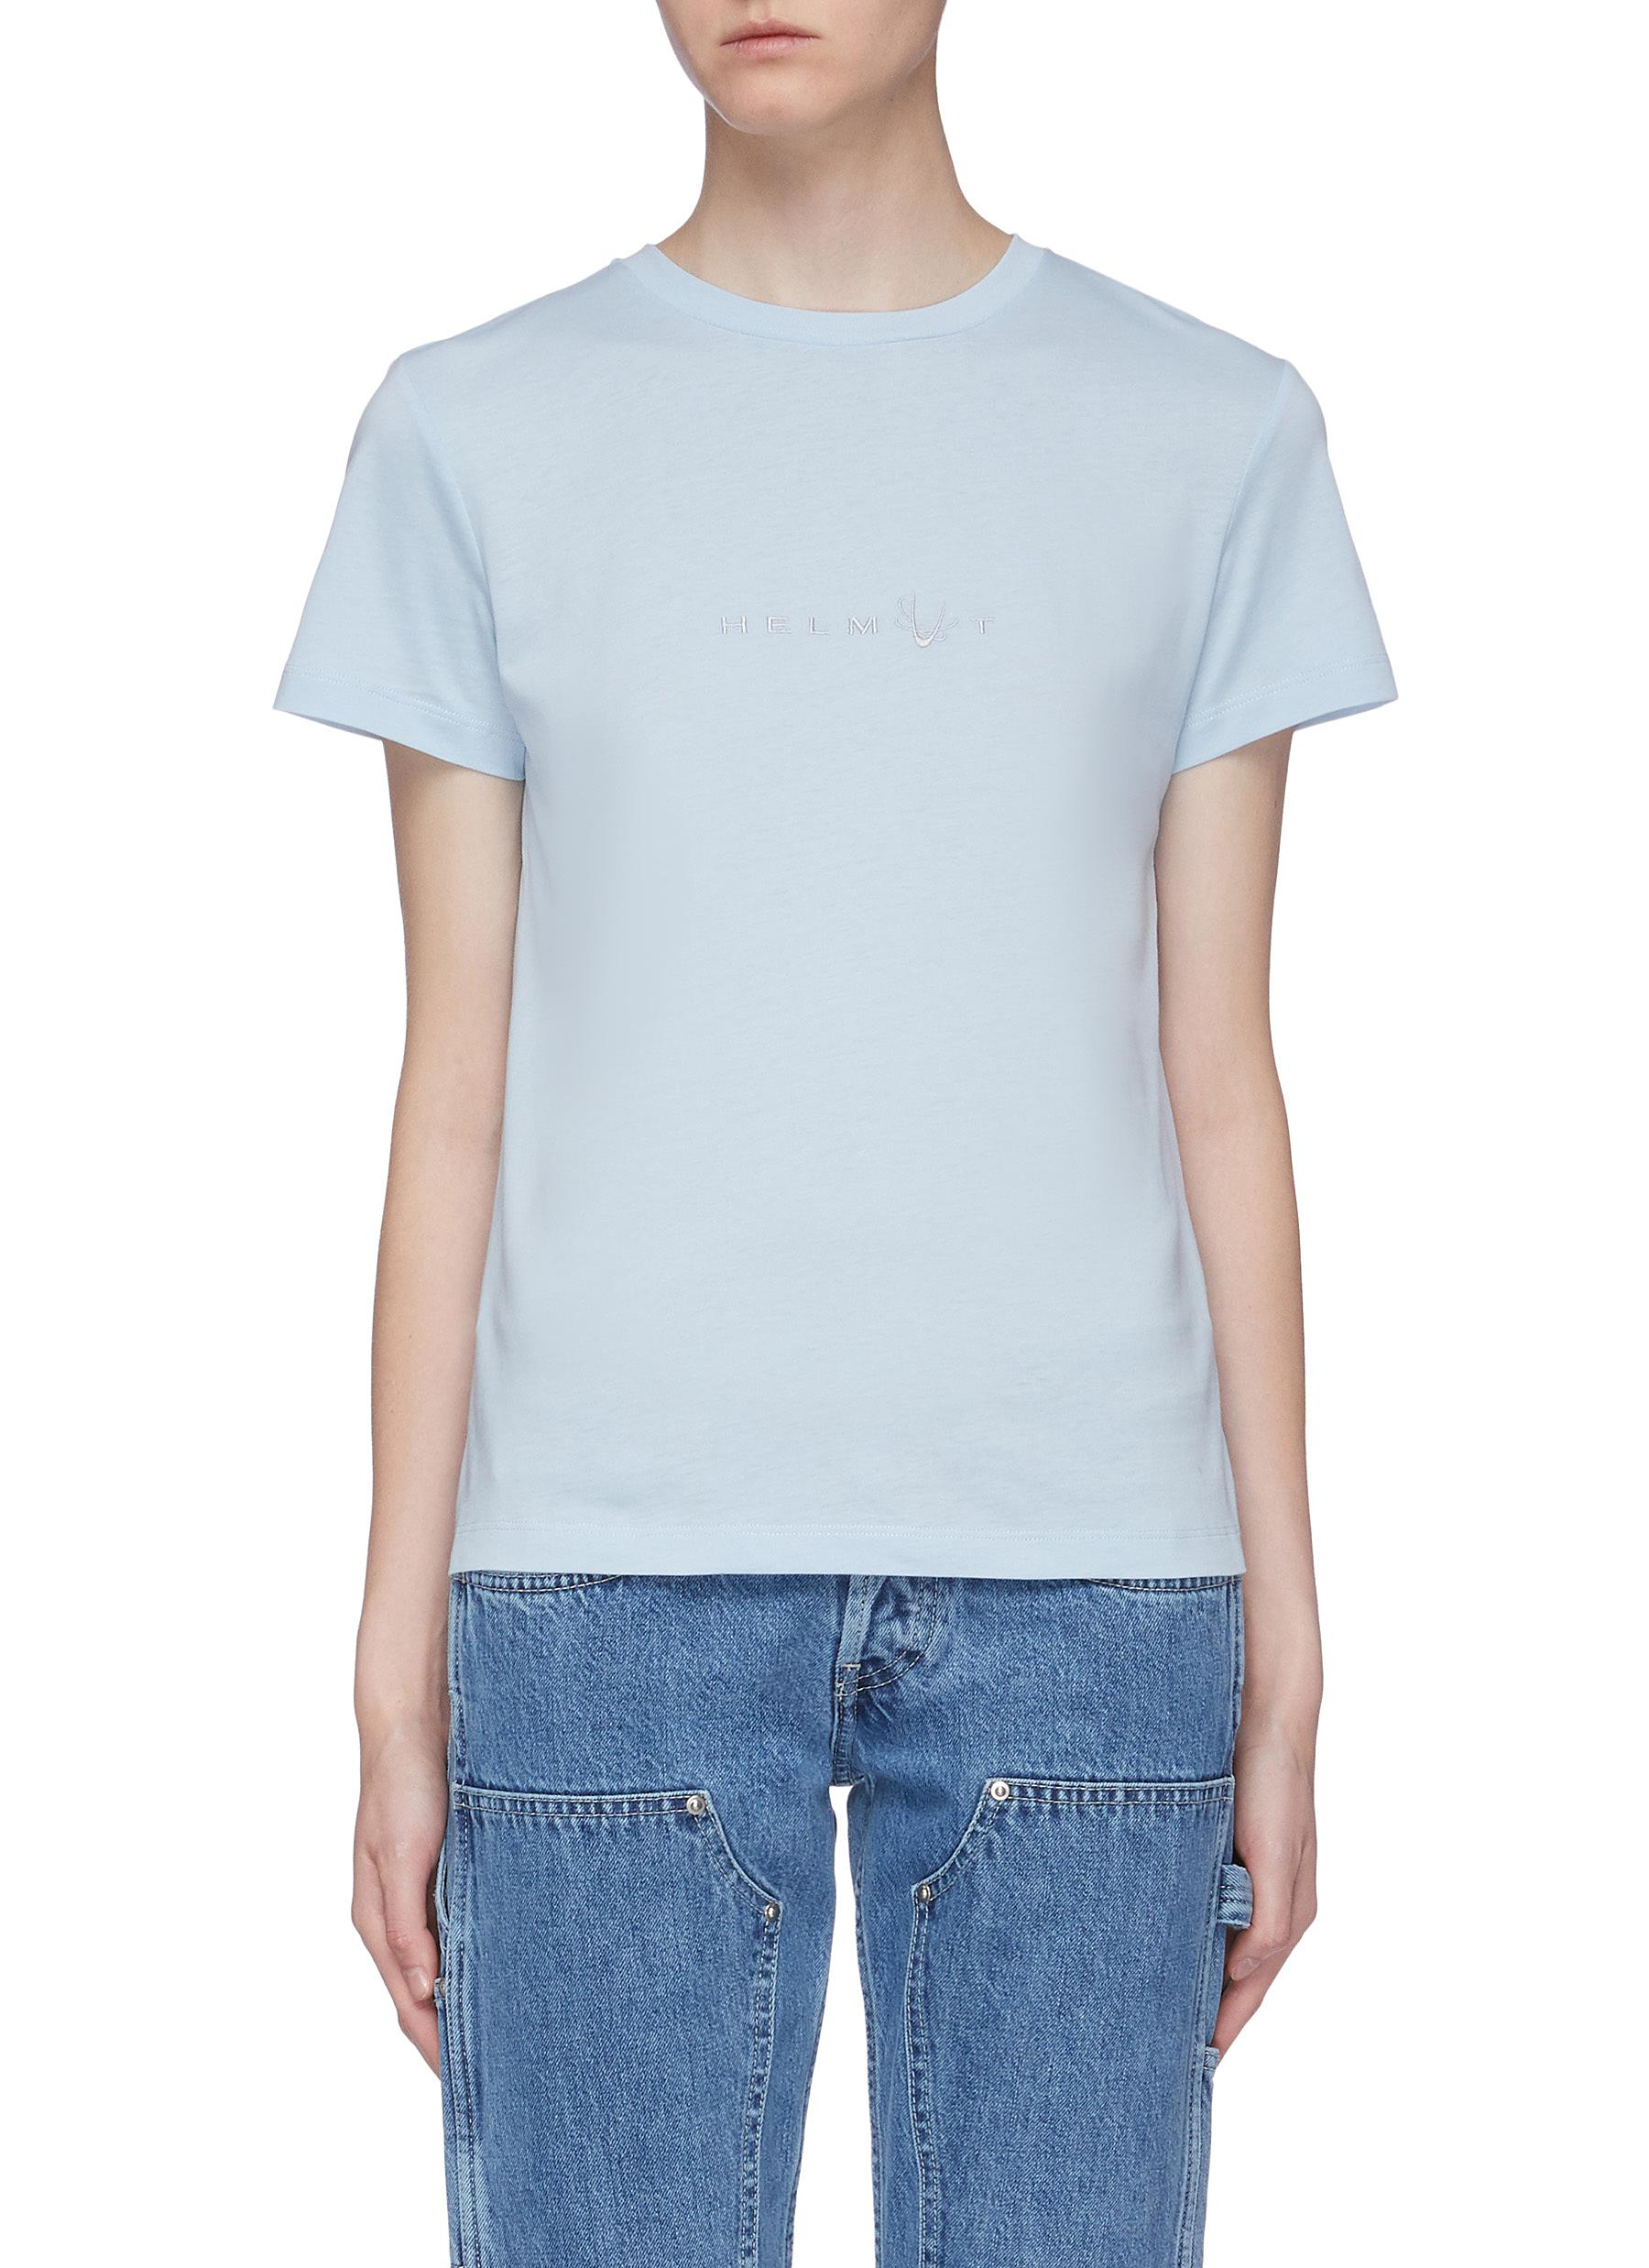 Alien logo embroidered T-shirt by Helmut Lang